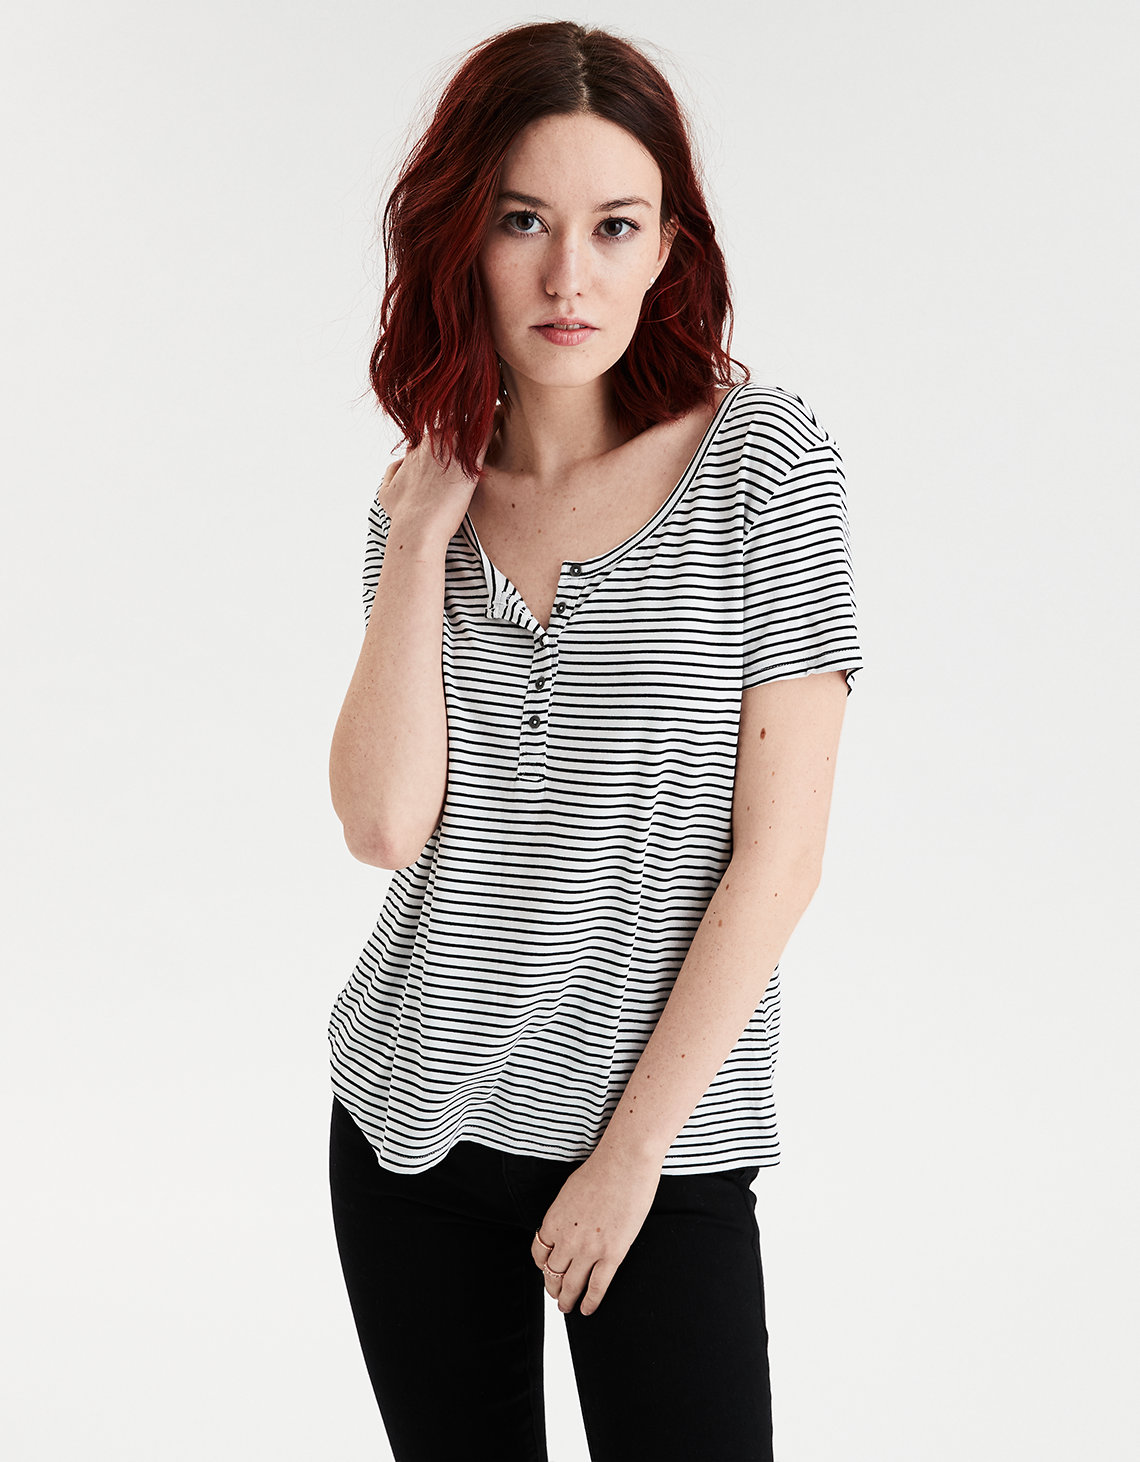 72dfa2b8ac4 AE Soft   Sexy Striped Jersey T-shirt. Placeholder image. Product Image